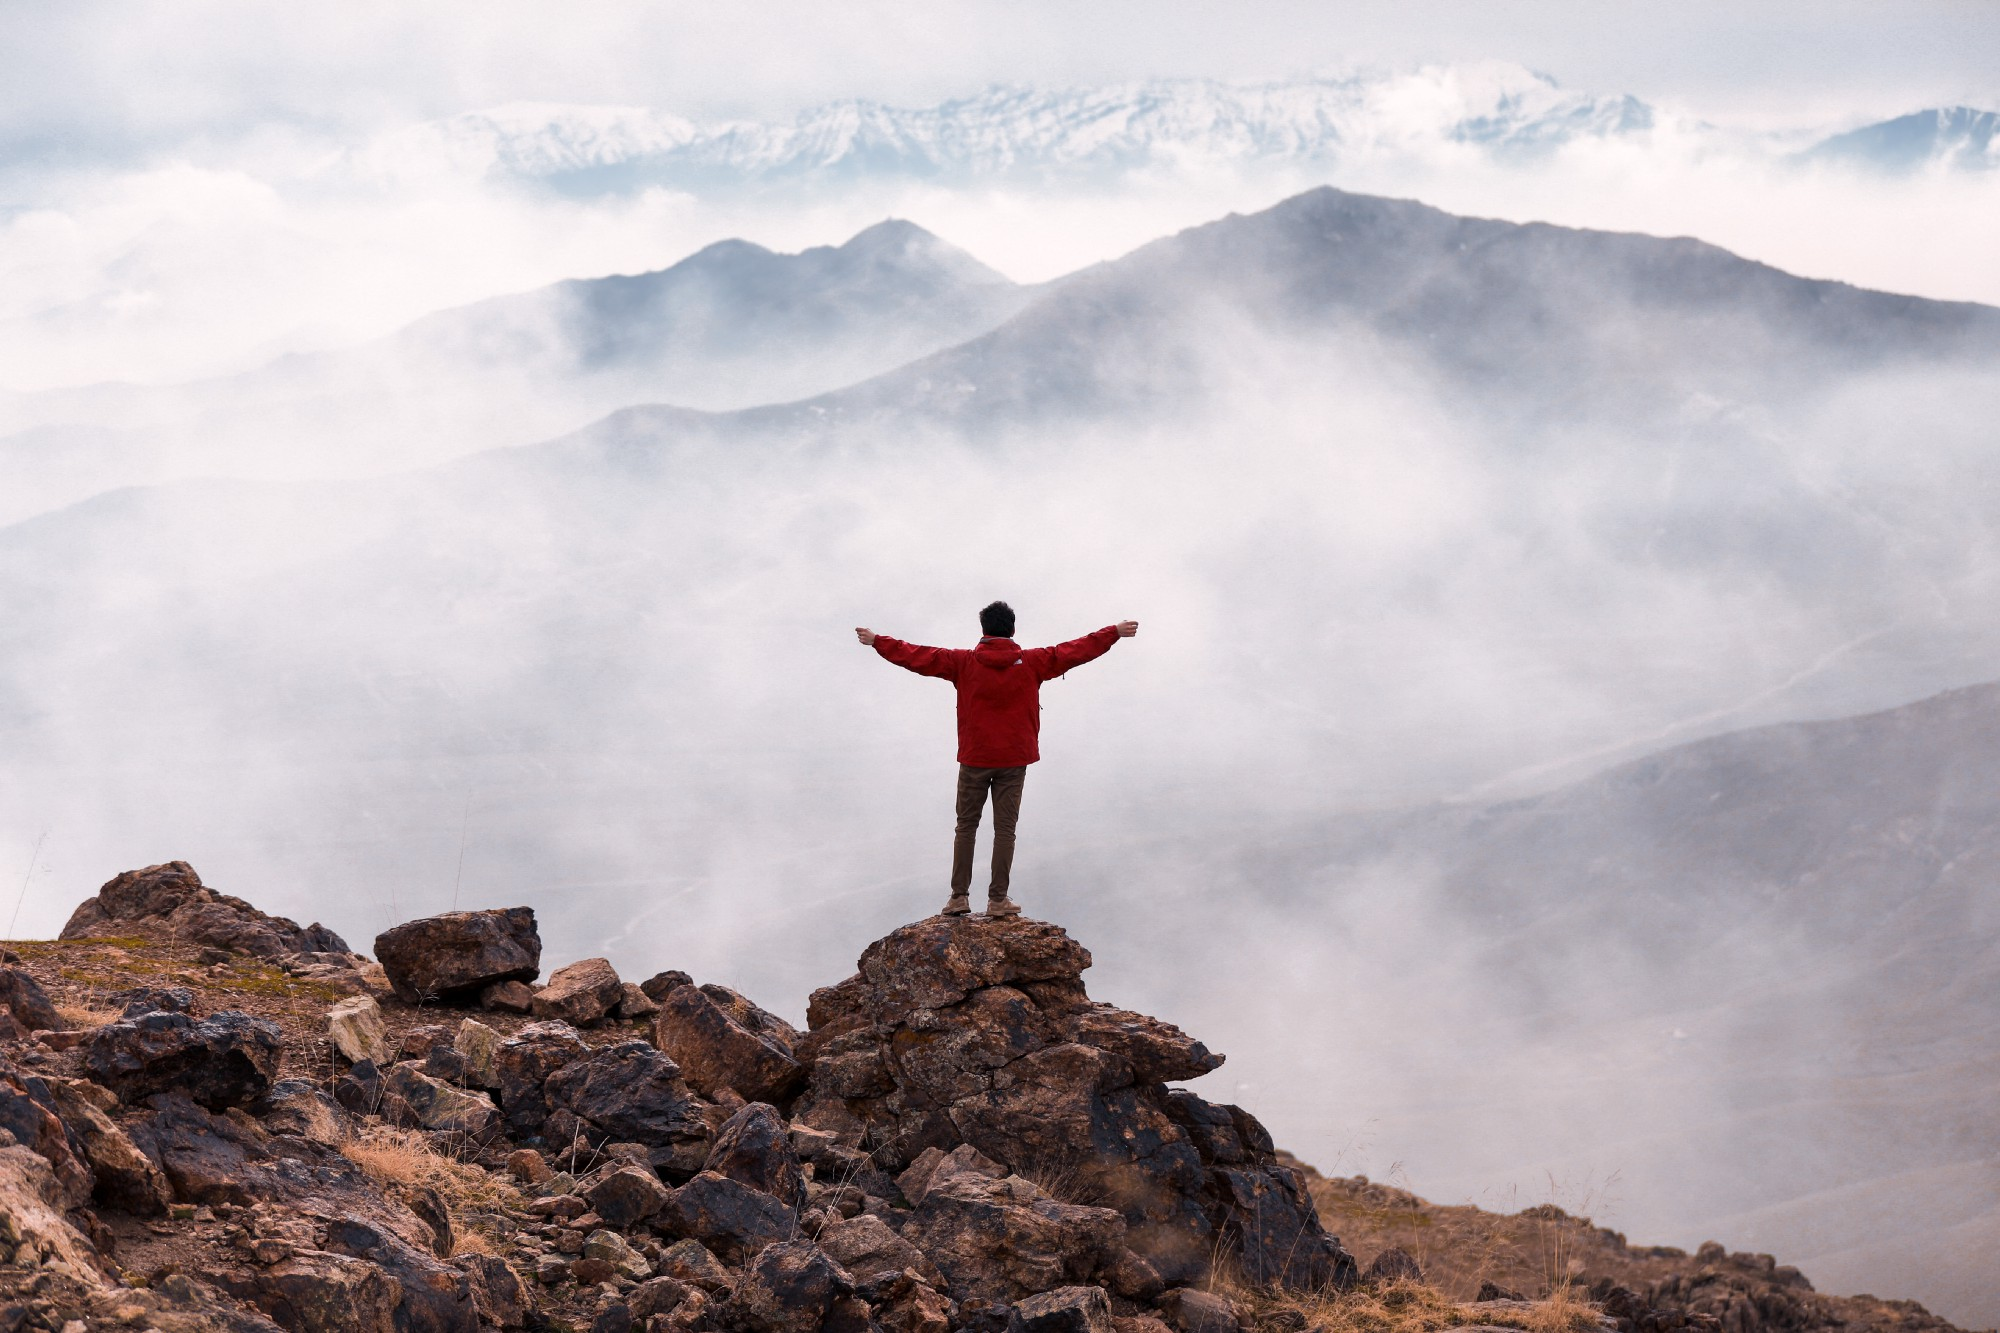 The back of a person wearing a read hiking jacket, standing arms outstretched, facing an ocean of mountains and clouds.